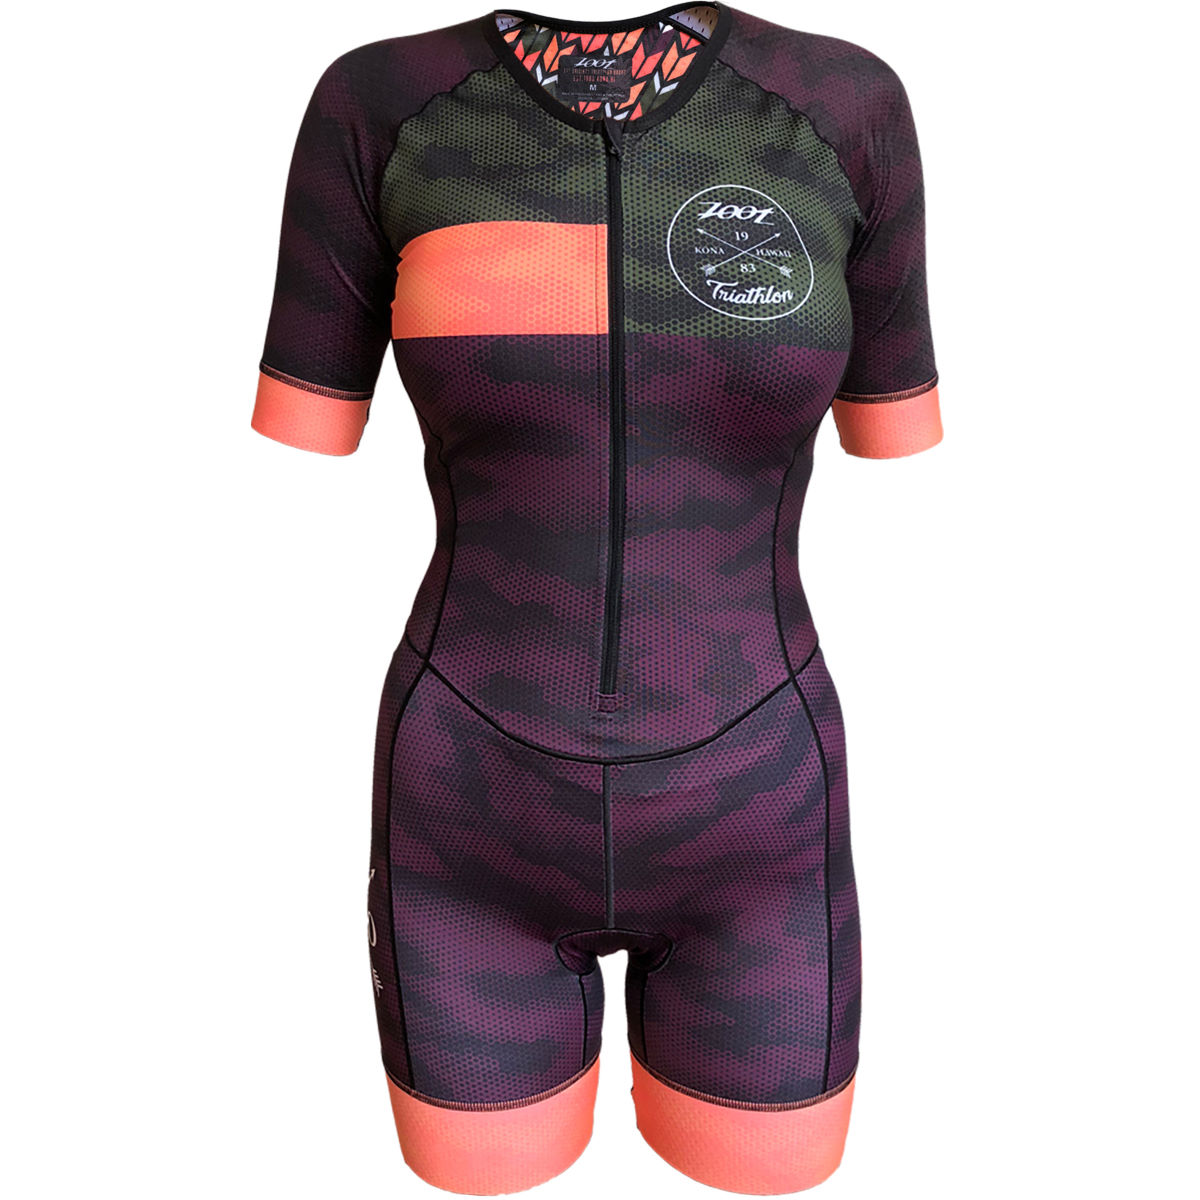 Image of Trifonction Femme Zoot LTD Aero Race (manches courtes) - Extra Large